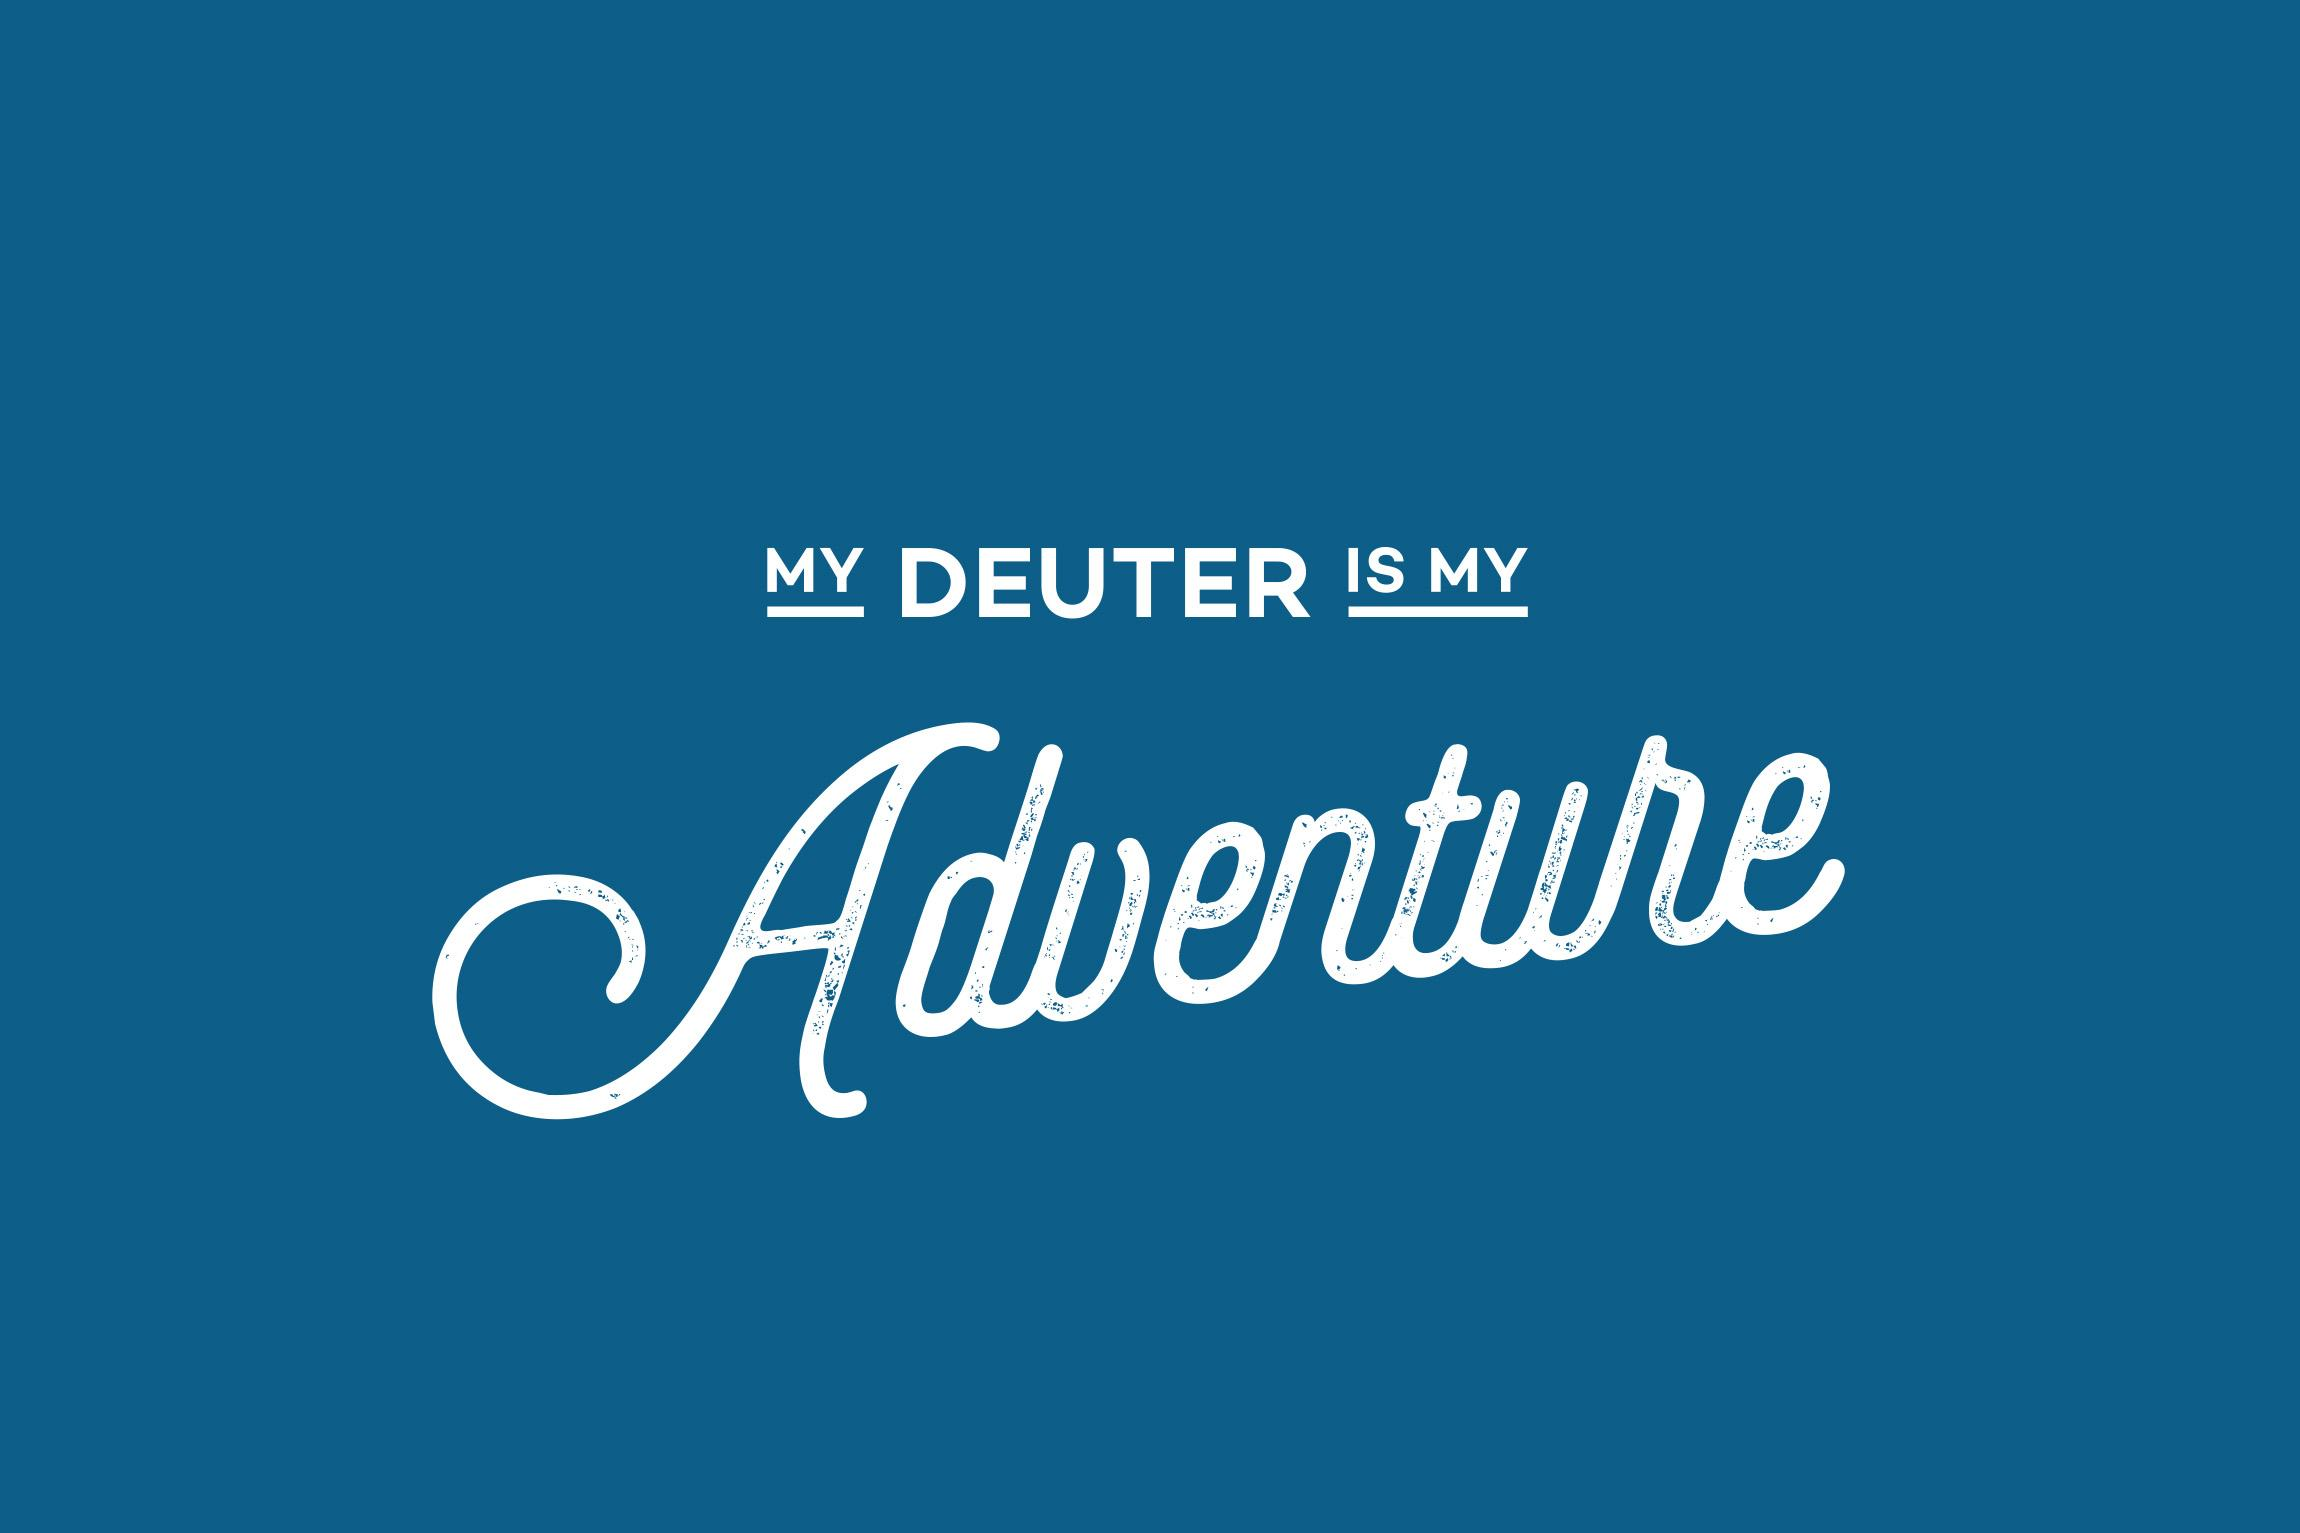 deuter-imagekampagne-my-adventure-02.jpg